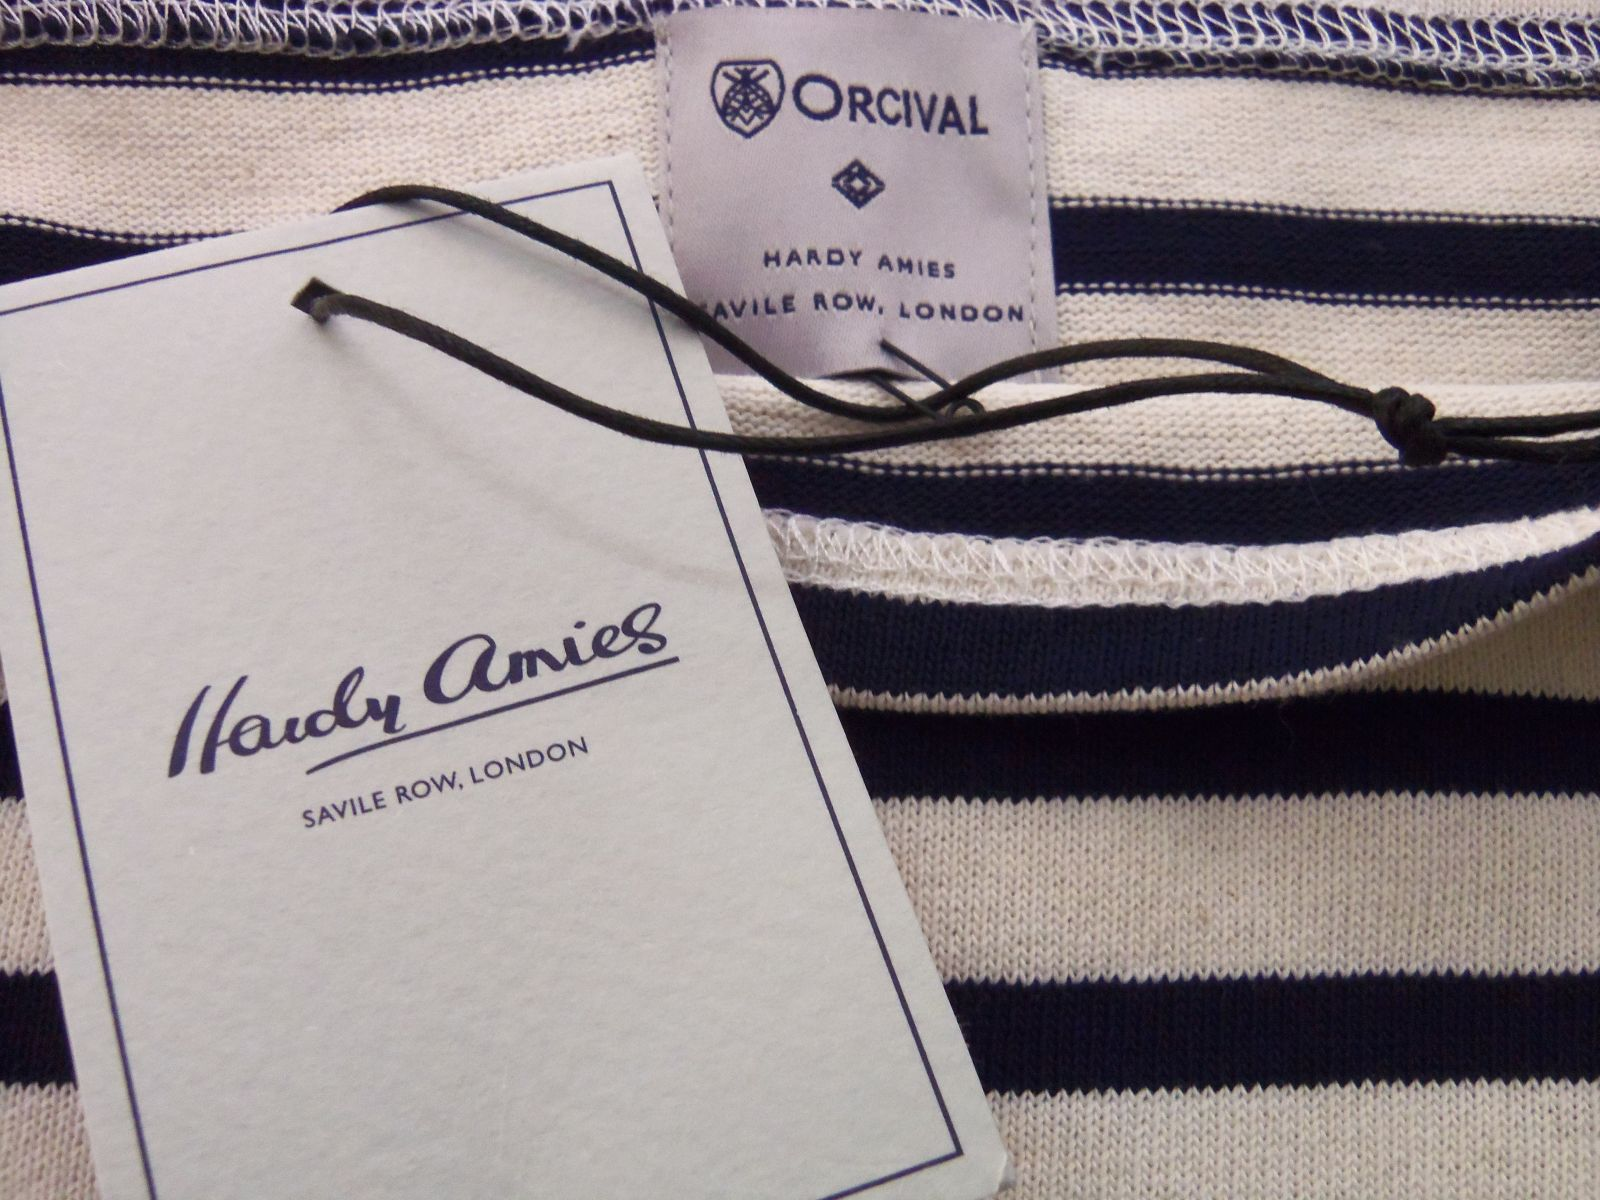 ORCIVAL X HARDY AMIES